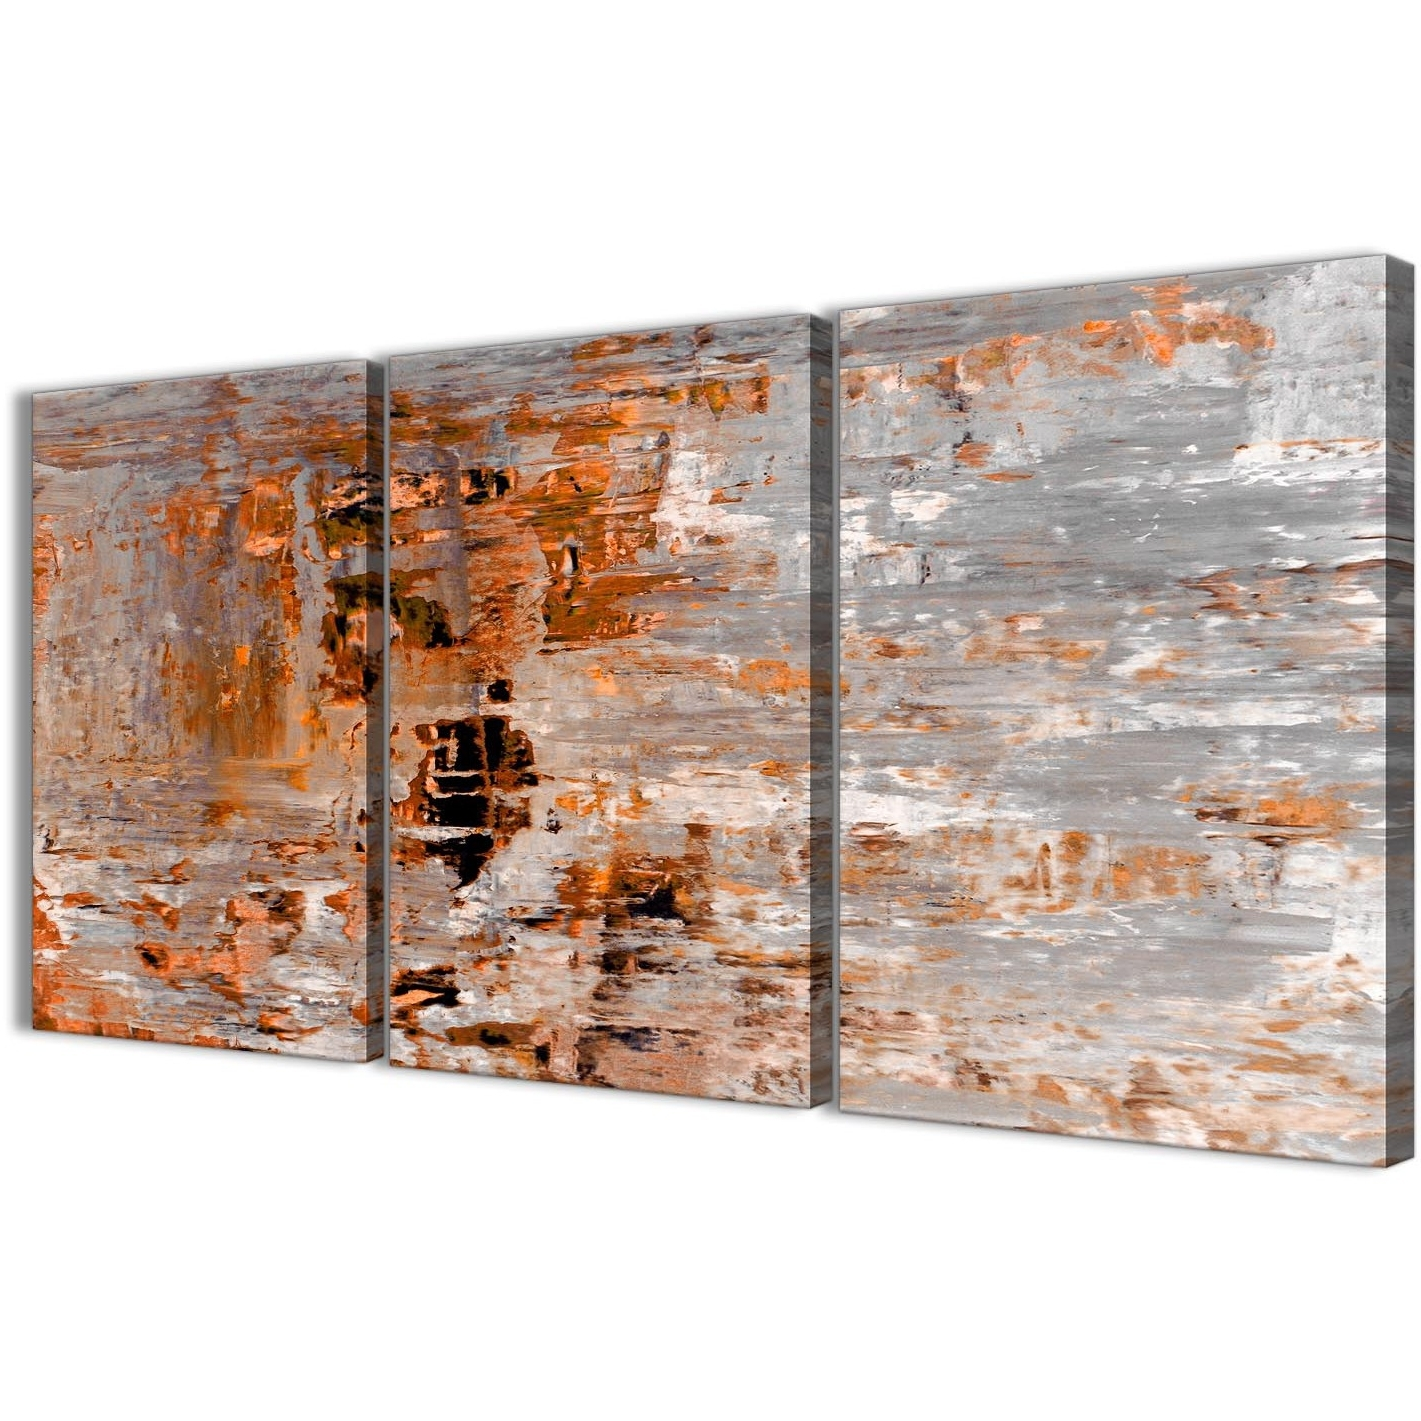 3 Panel Burnt Orange Grey Painting Dining Room Canvas Wall Art Decor Throughout Popular Orange Wall Art (Gallery 8 of 20)